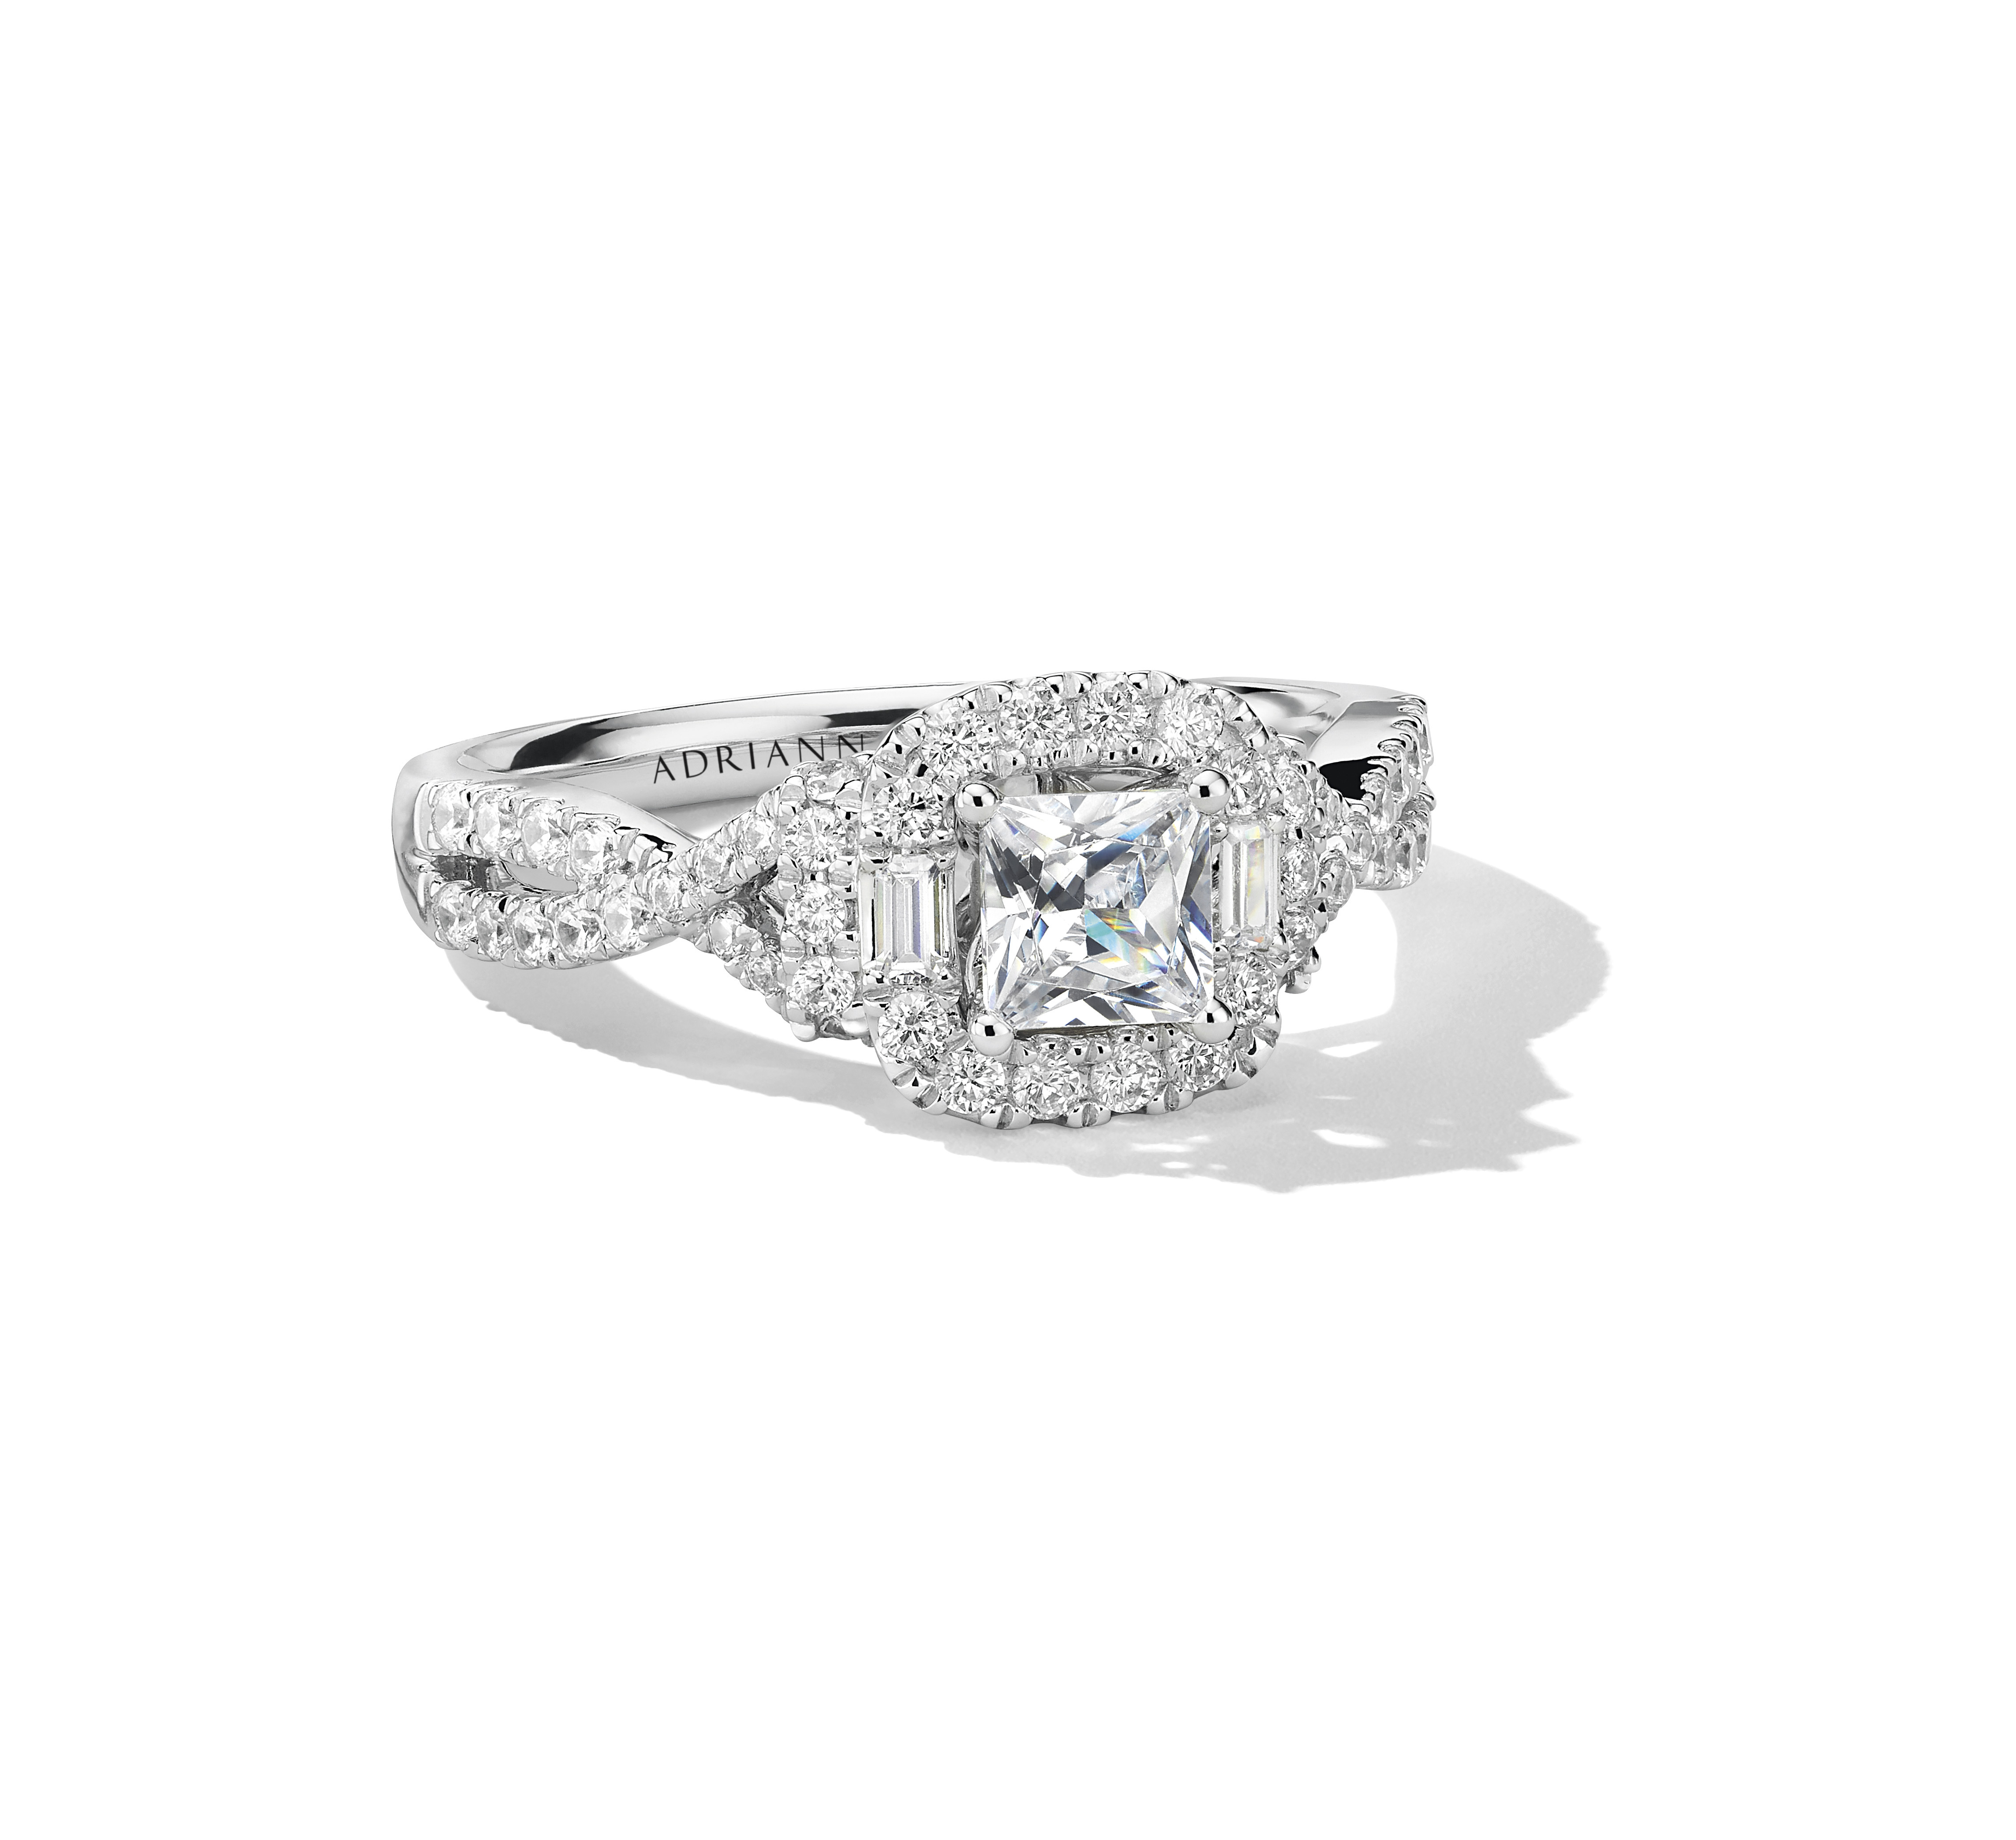 Adrianna Papell 7/8 carat total weight princess cut white gold diamond ring. Retail: $2,999.99 Available at Kay Jewelers stores or online at Kay.com. (Photo: Business Wire)